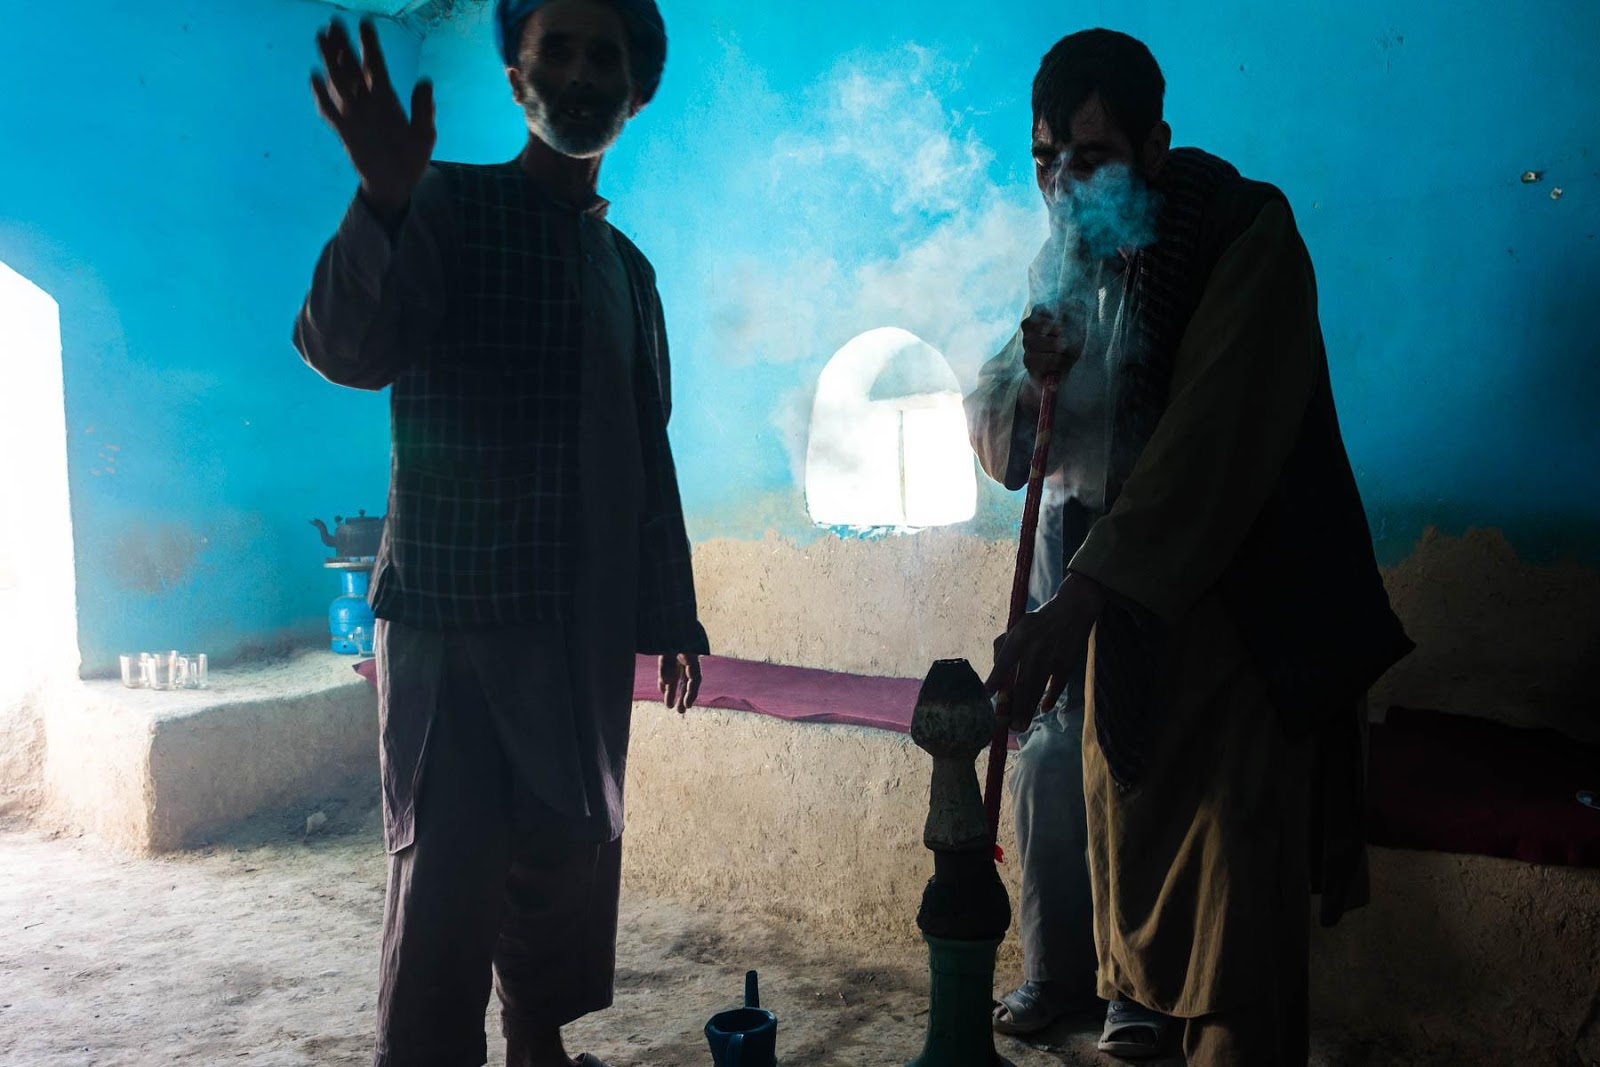 Traveling in Afghanistan is objectively difficult and unsafe, but when things work out, they're unforgettable! Case in point: heading out to the Afghan countryside to visit the ruins of an ancient city, and ending up in a shepherd's hut smoking a gigantic homemade bong (HQ: we don't condone substance abuse, nor do we condone censorship - these are Alex's words) with a bunch of local men. I couldn't dream this stuff up if I tried.